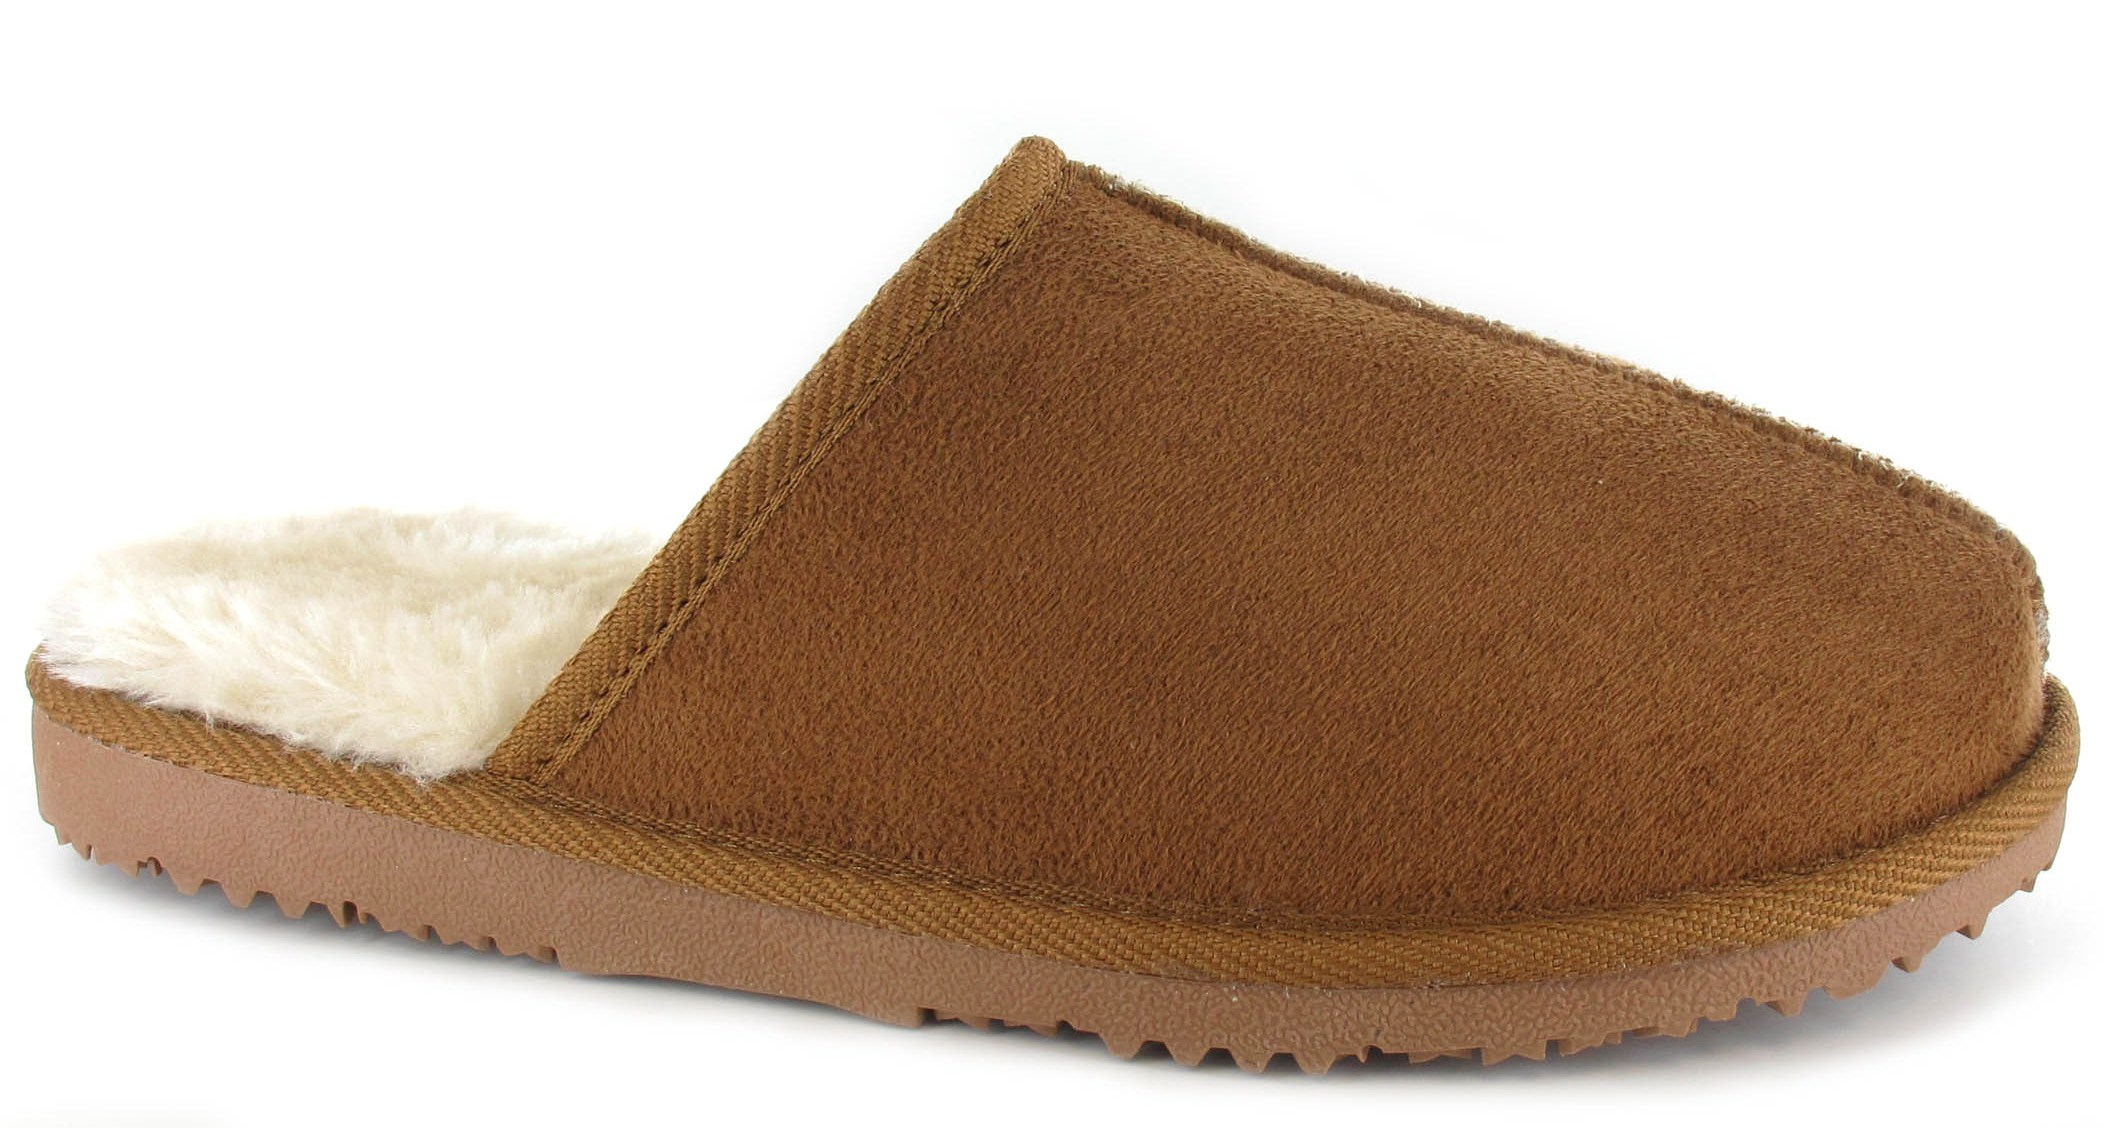 ce9cd8eb2200 Ella Shoes - Jack Men s Slipper - Chestnut - Footwear - Squires ...